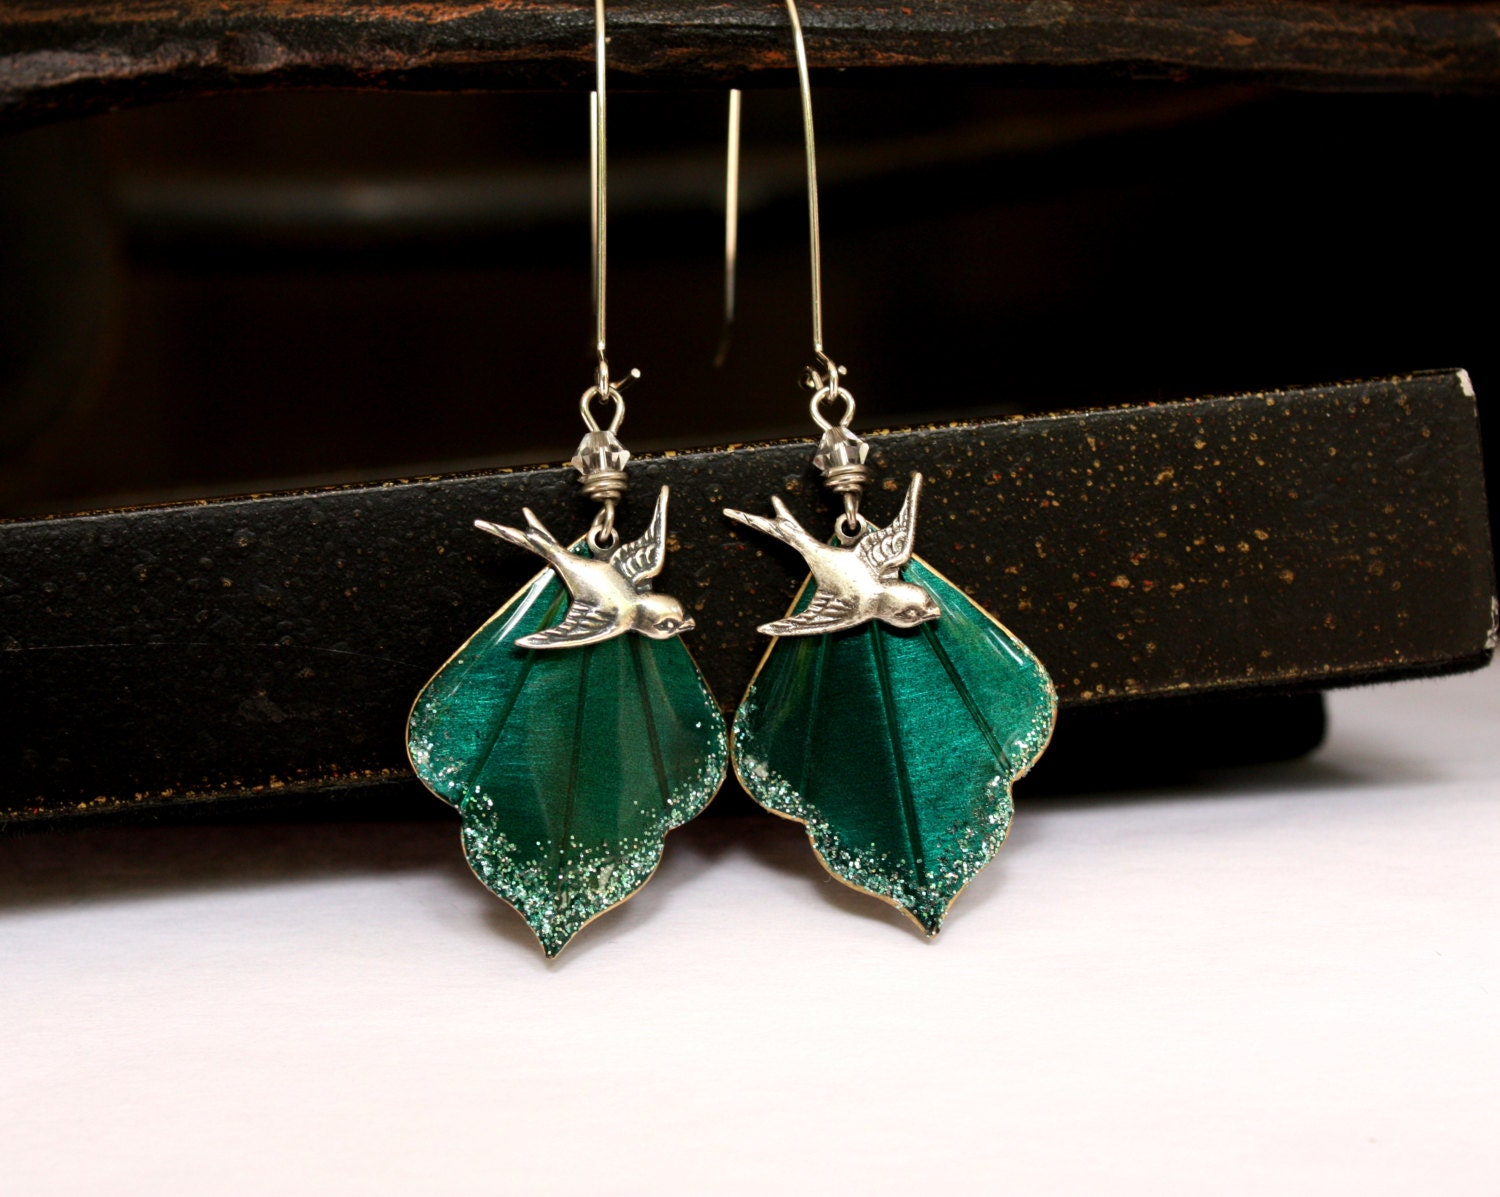 Wedding Jewelry Bridal Earrings for Her Blue Green Dangle Charm Bird Drop Earrings Bridesmaid Gift for the Mother of the Bride - MStevensonDesigns